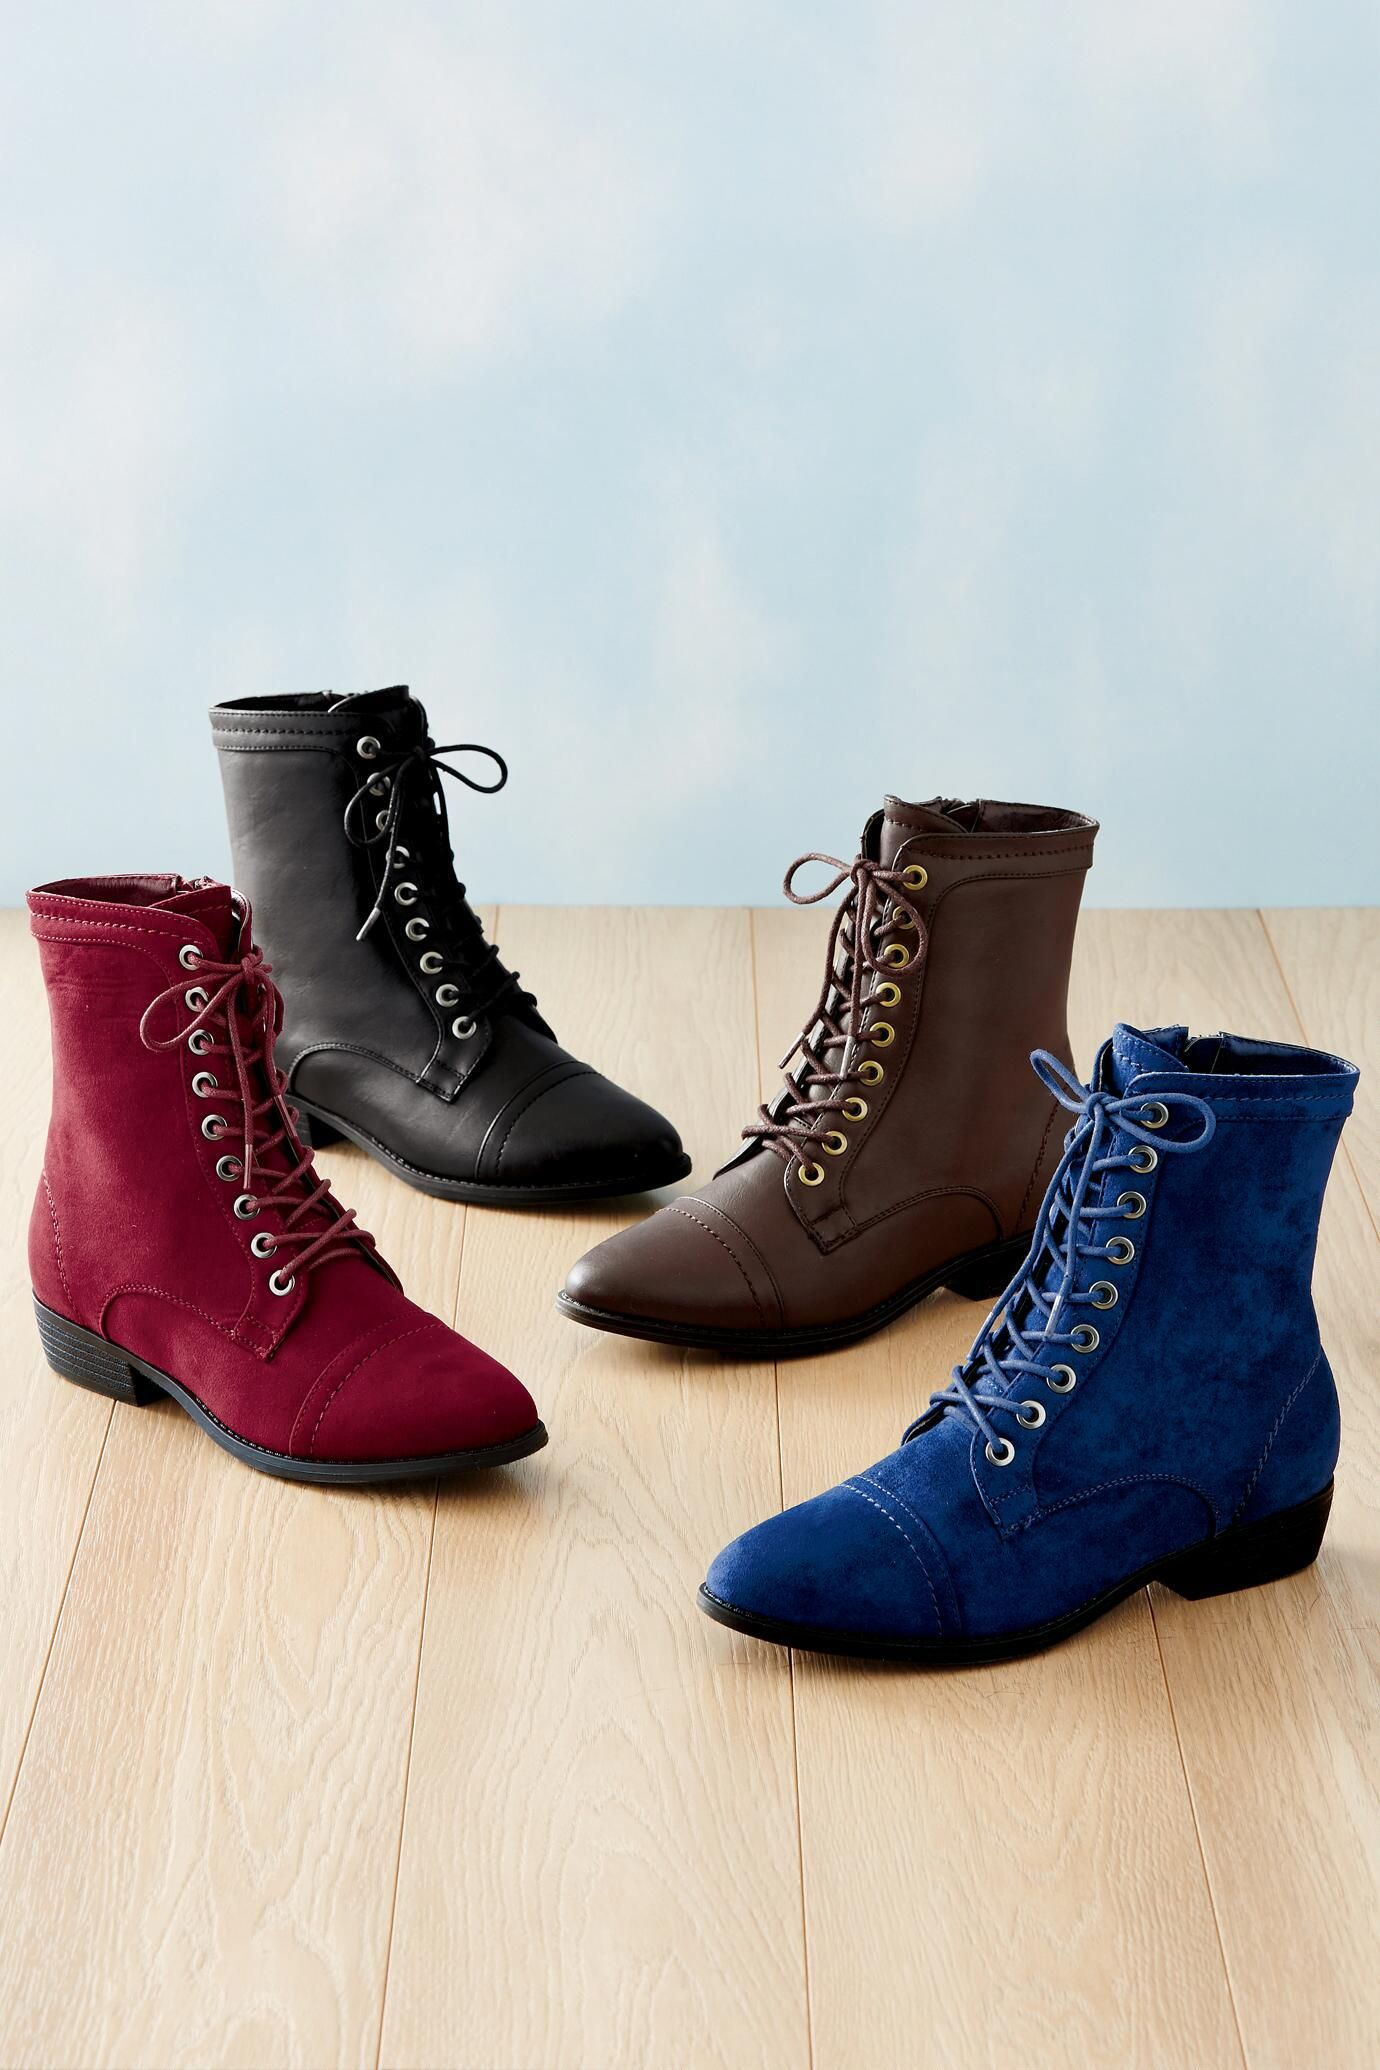 ce1cb0a03890 Lace-Up Boots by Bamboo®  Classic Women s Clothing from  ChadwicksofBoston   49.99